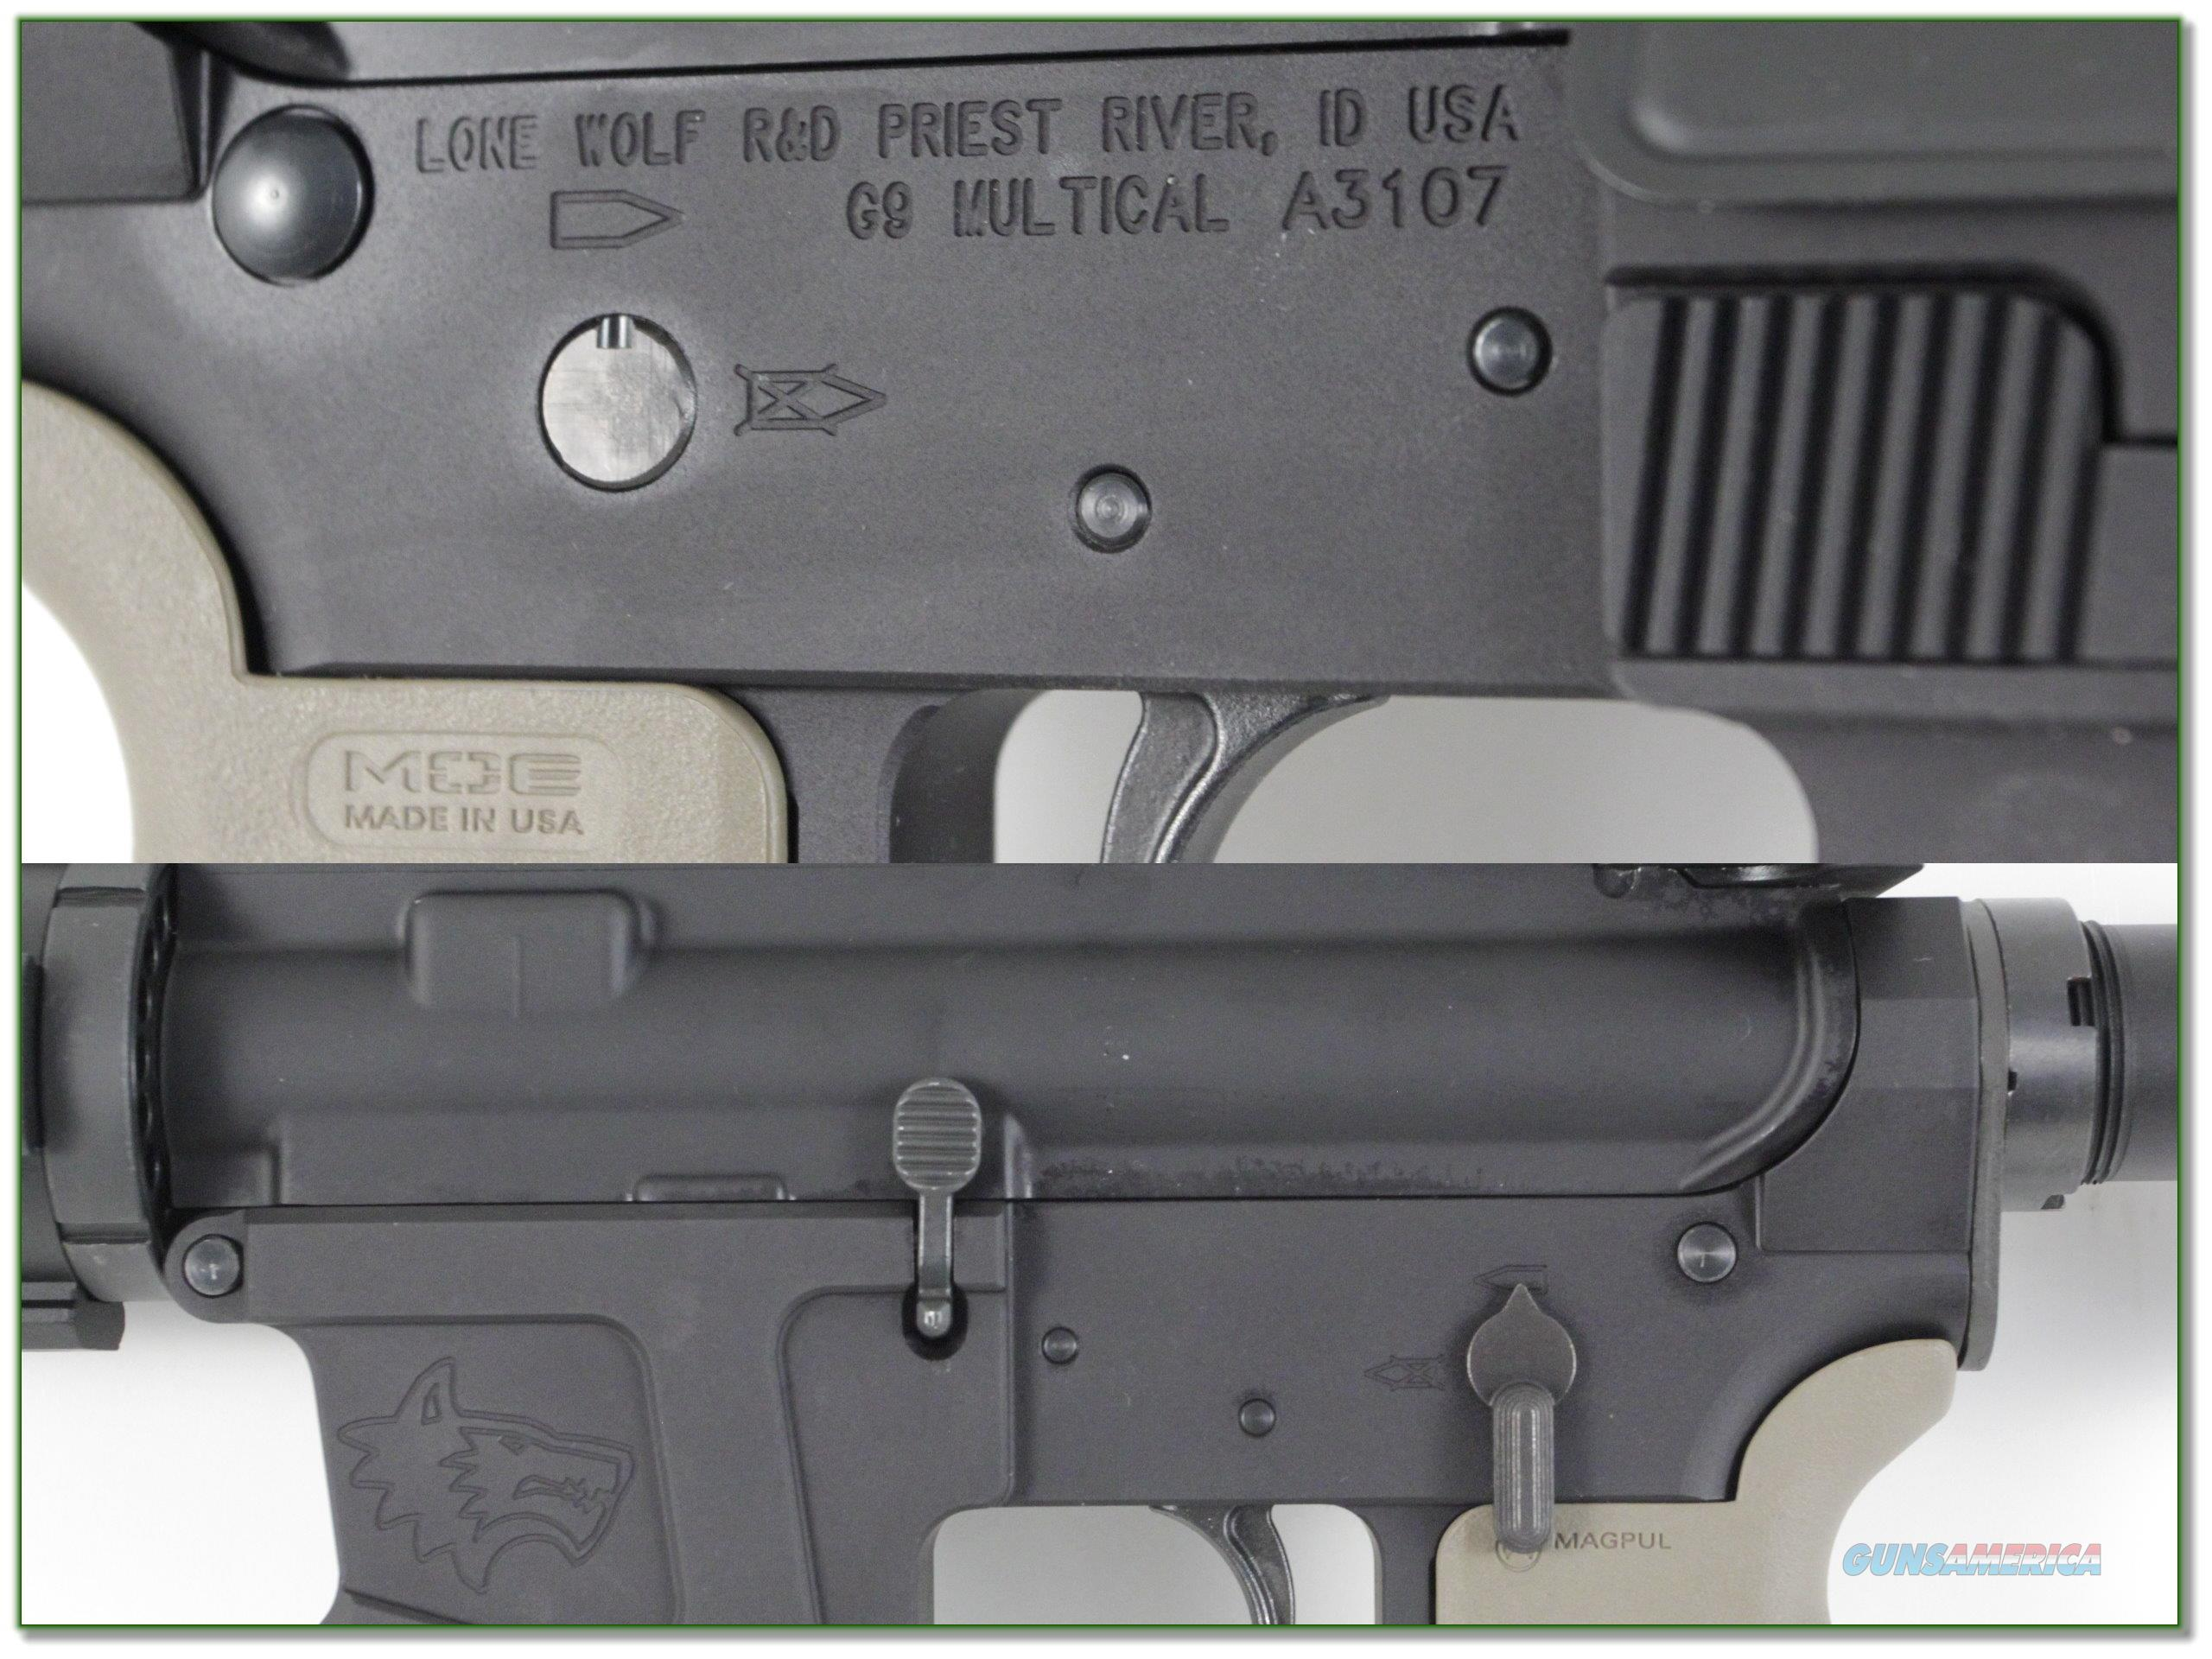 Lone Wolf G9 Glock 9mm Ar Rifle For Sale